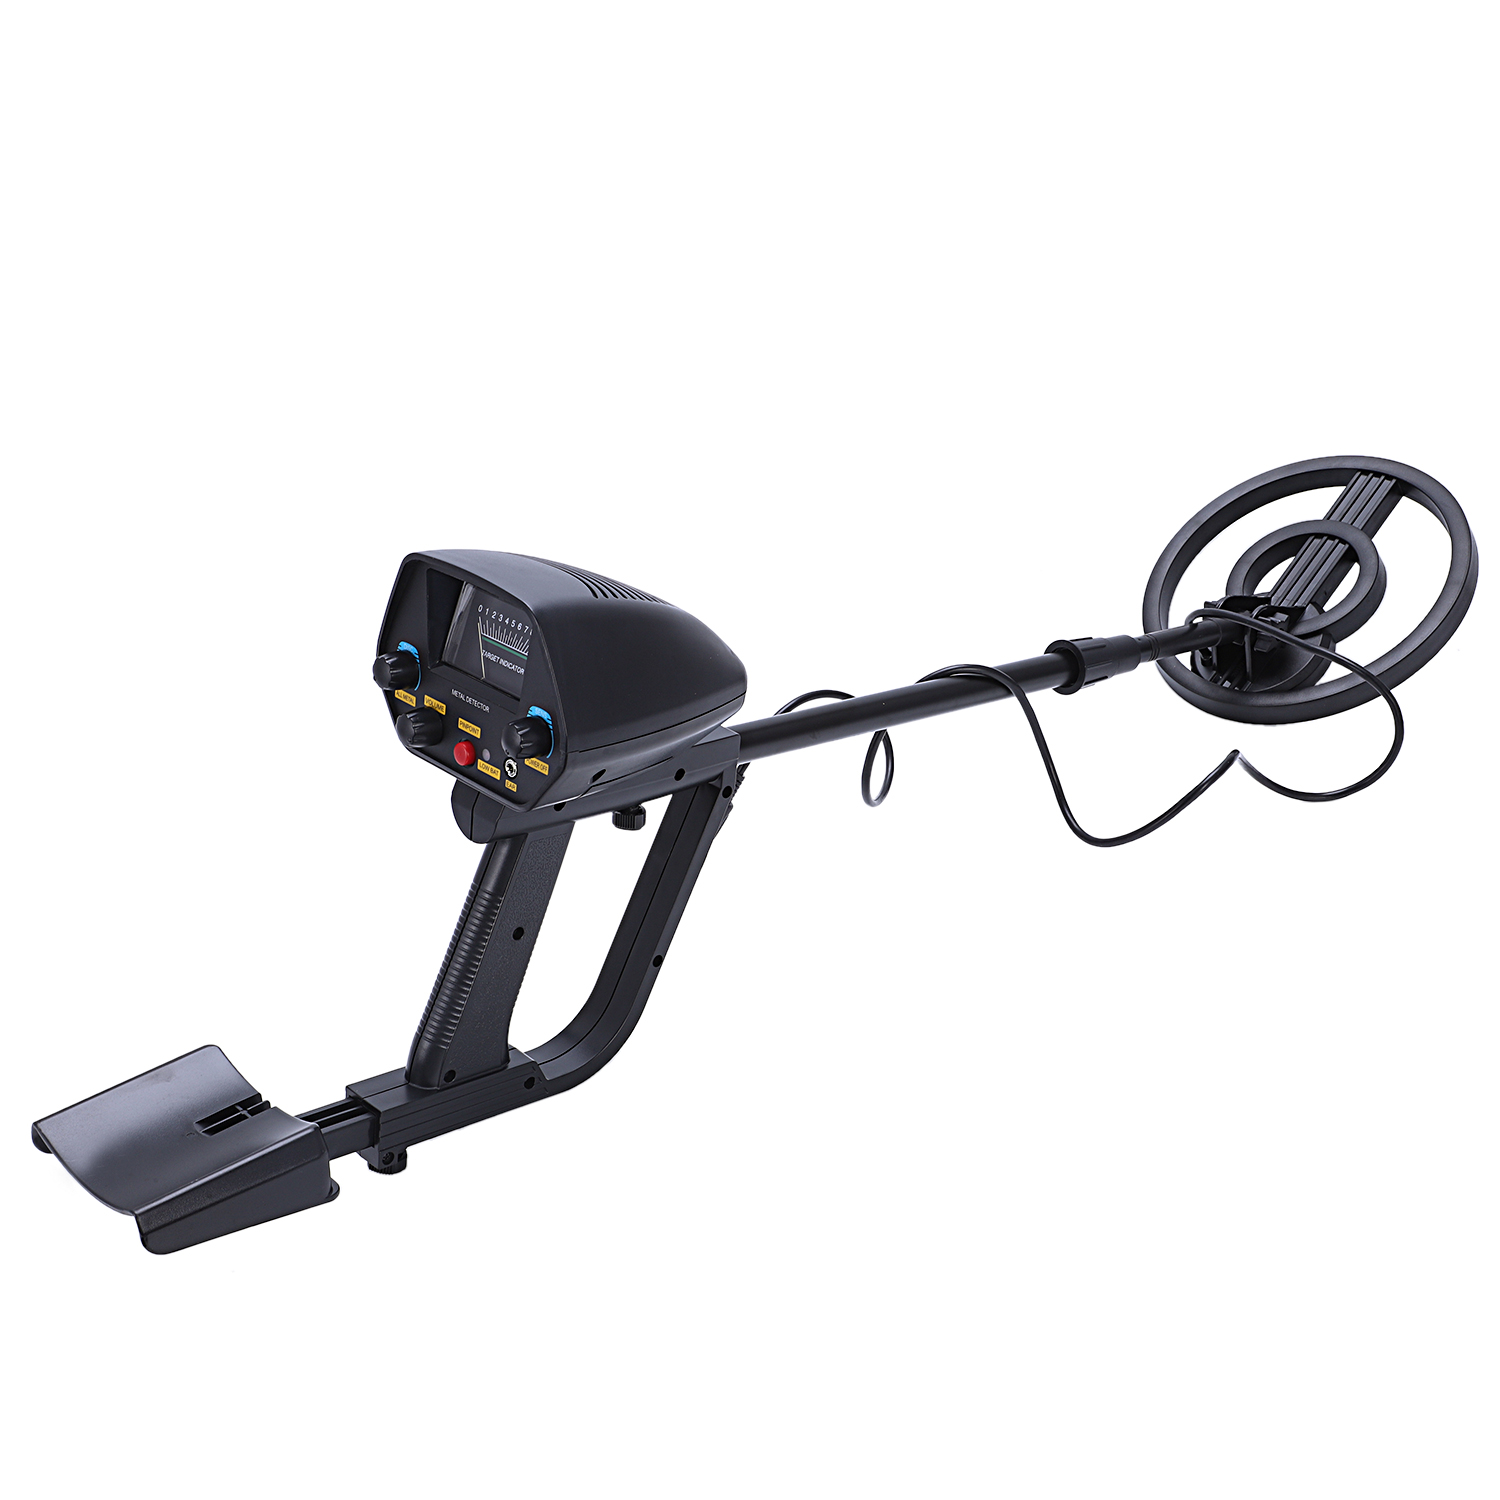 HLZS Professional Metal Detector Gold Treasure Portable Light weight Underground Metal Detector Searching Treasure MD4080 with